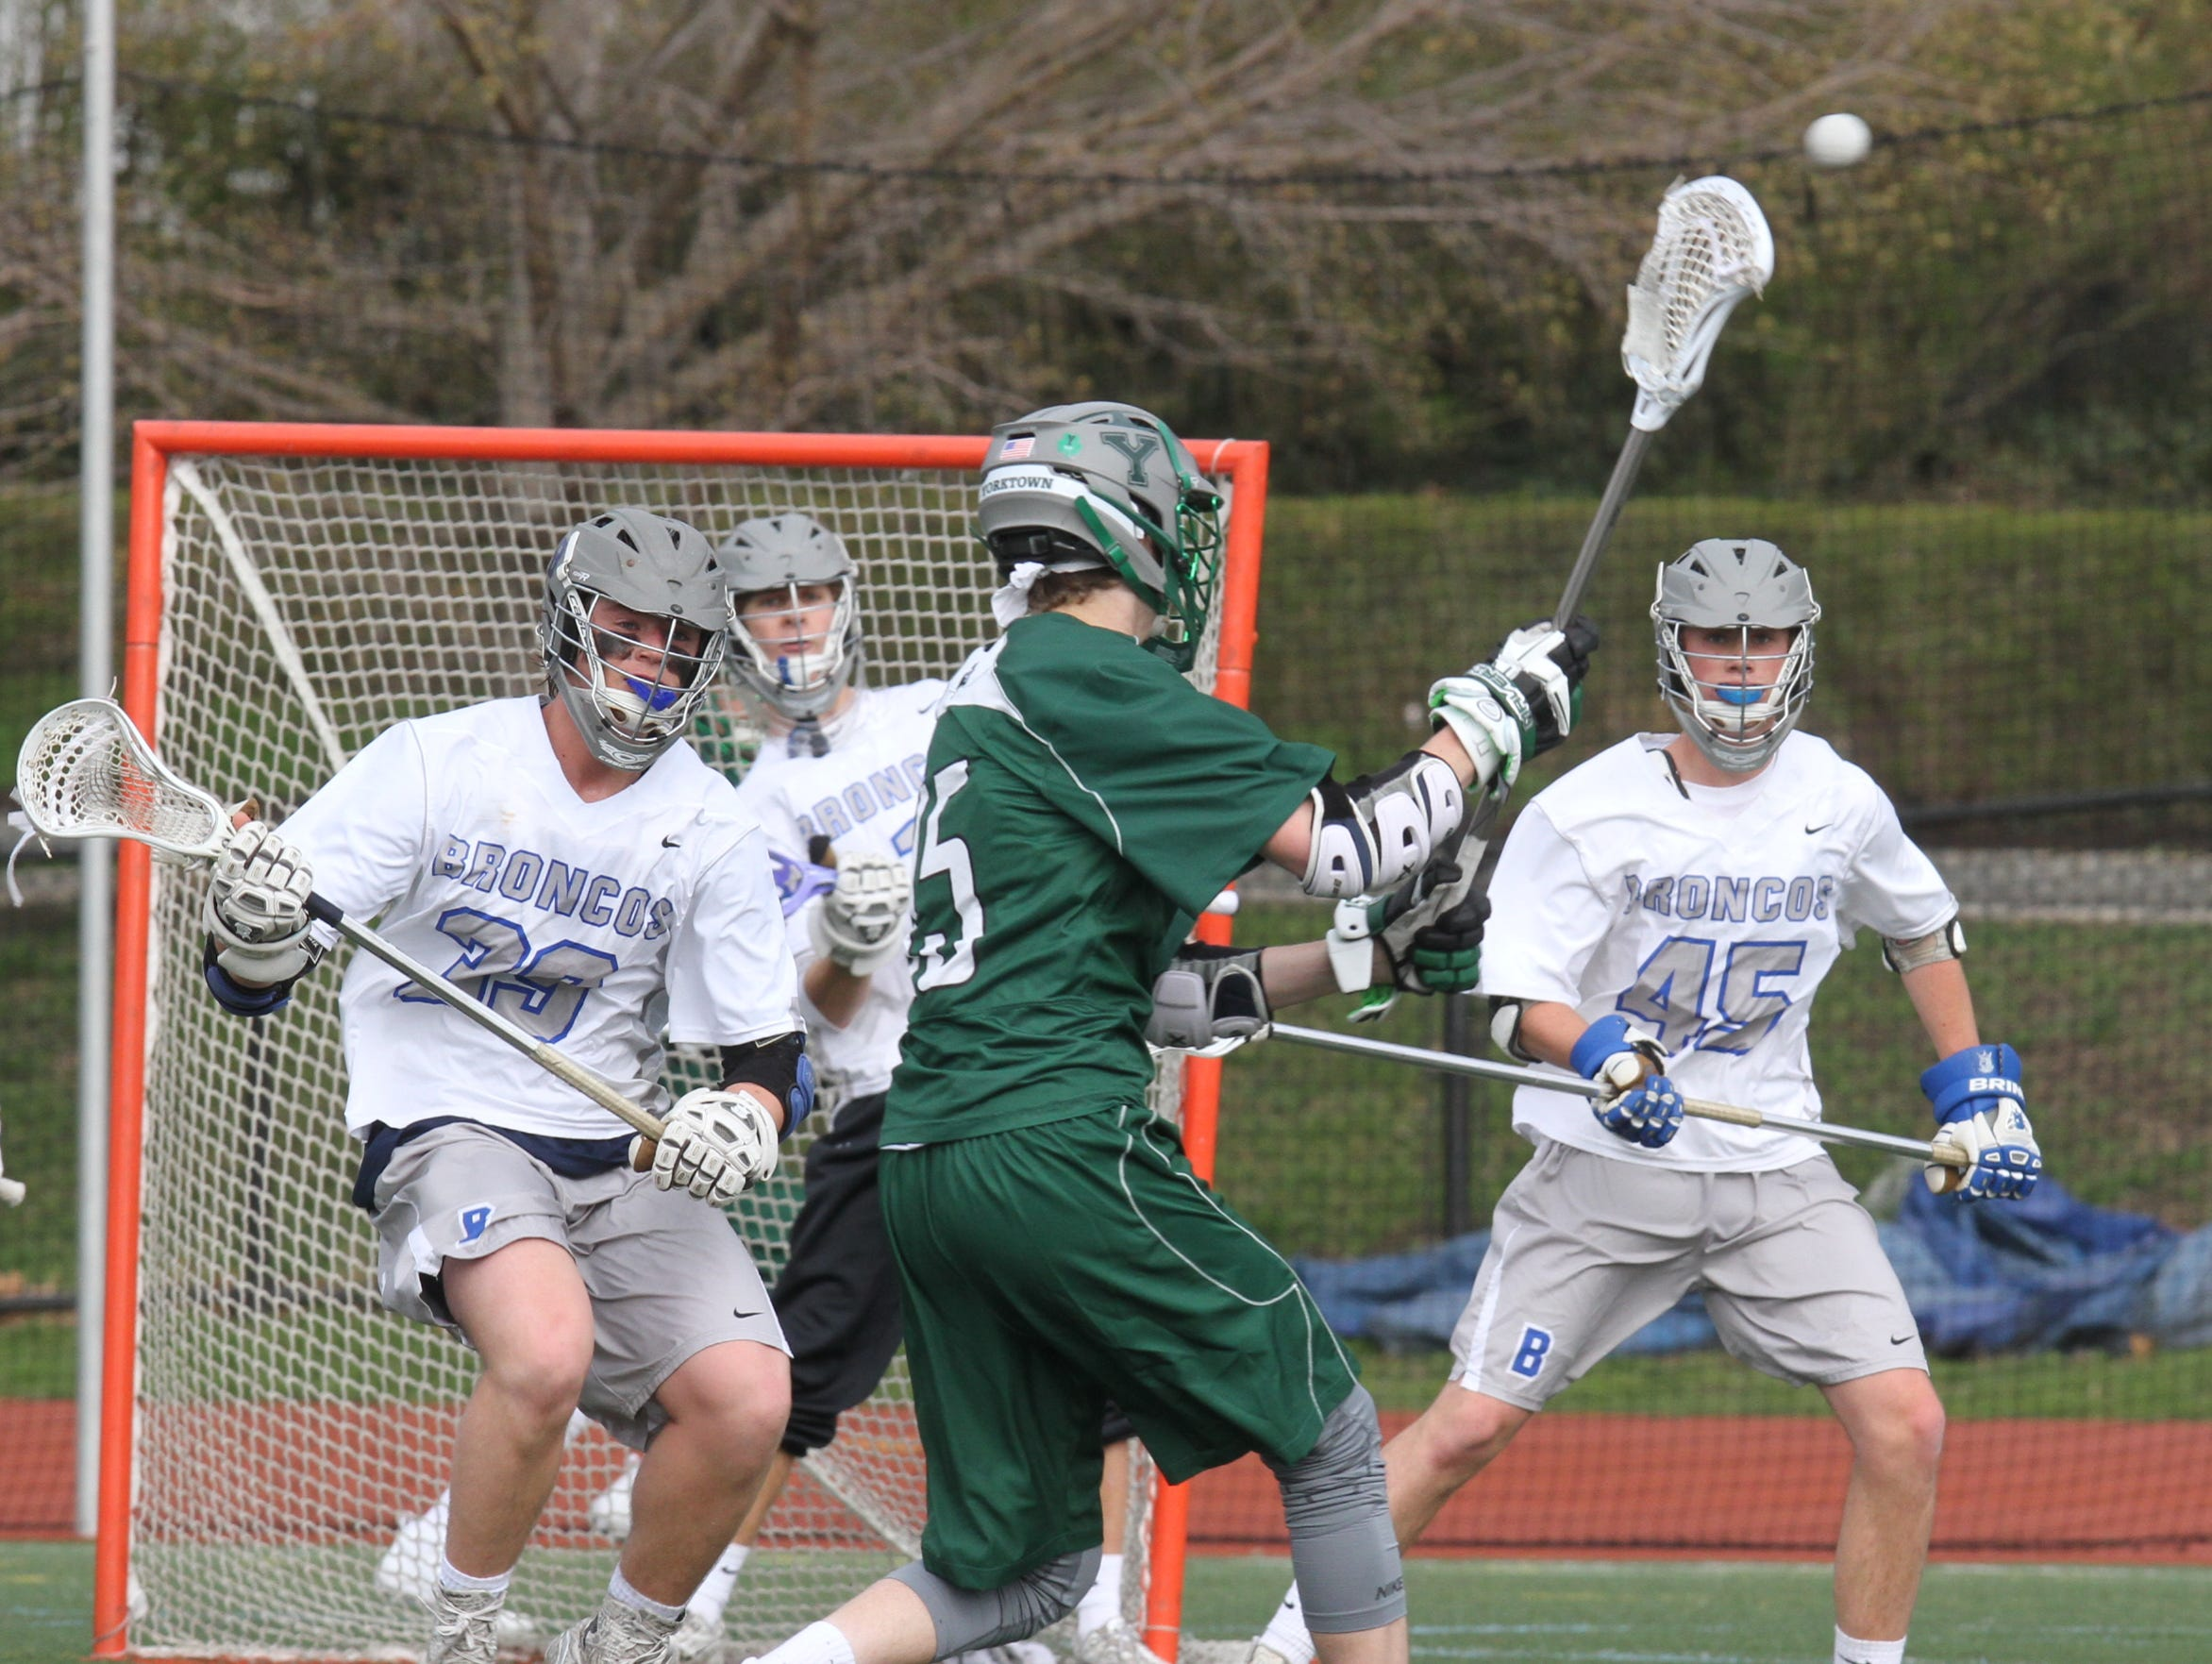 Yorktown's Kyle Casey (15) scores on the Bronxville defense during boys lacrosse at Bronxville High School on April 7, 2016. Yorktown defeats Bronxville 9-5.